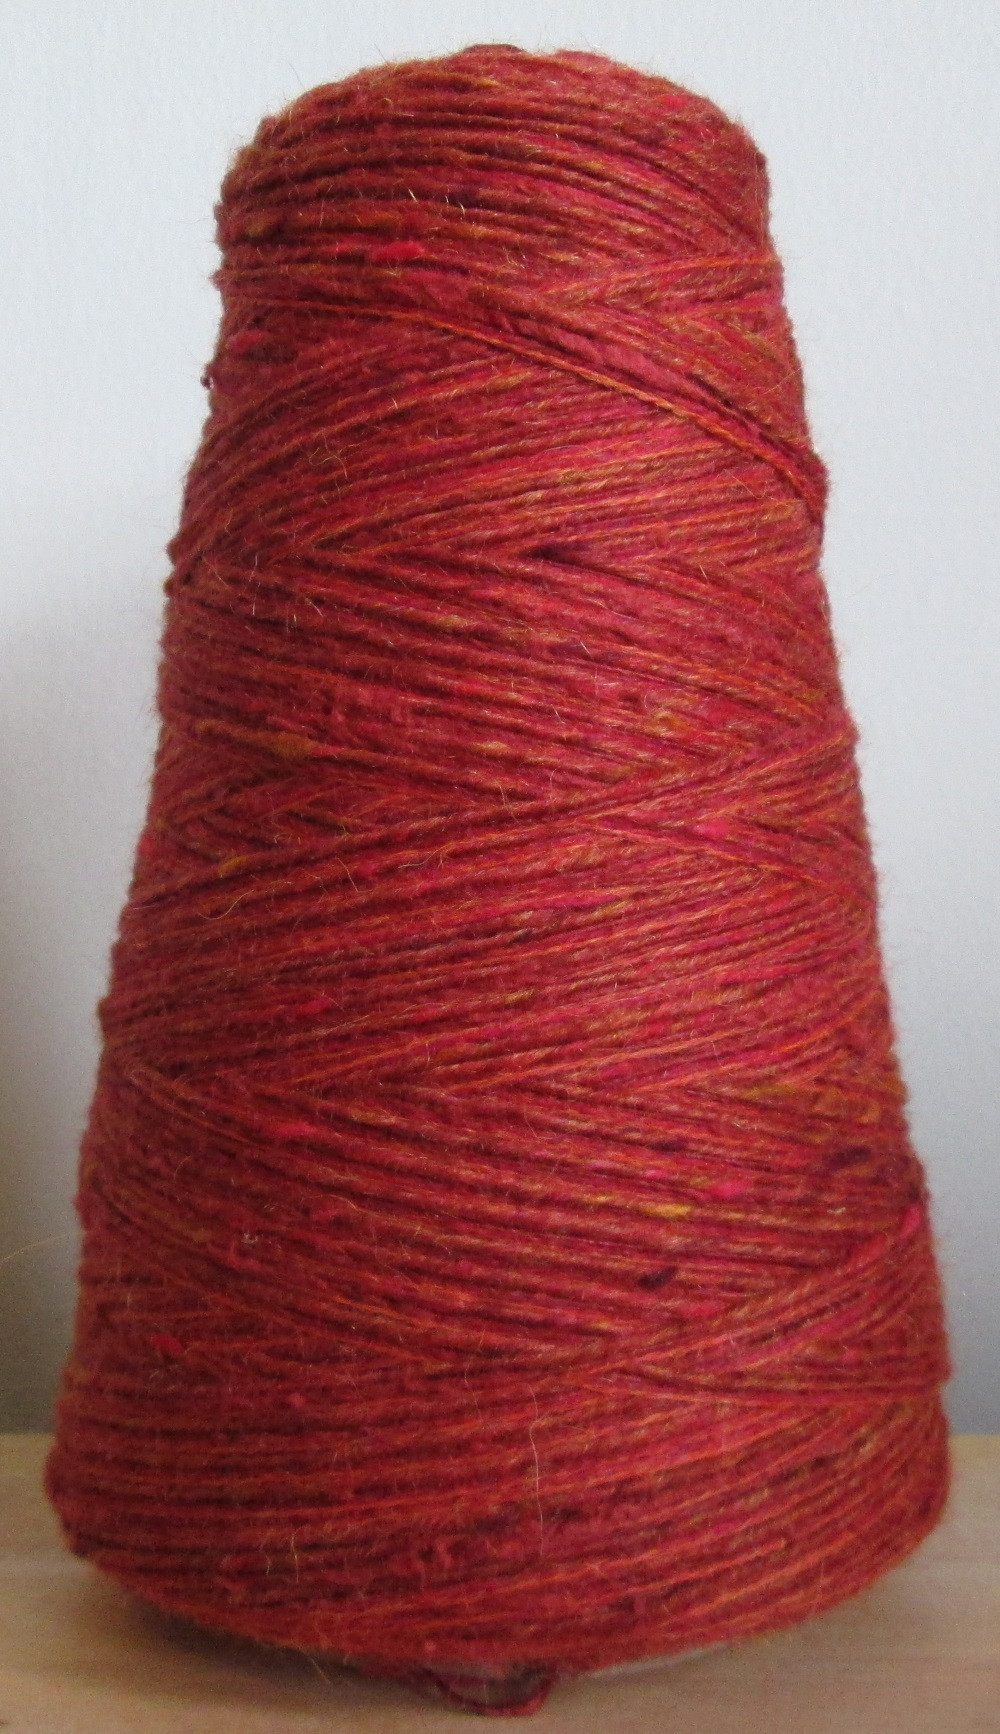 Inspirational Worsted Weight Knitting Yarn Yarn Thickness Of Innovative 50 Pictures Yarn Thickness